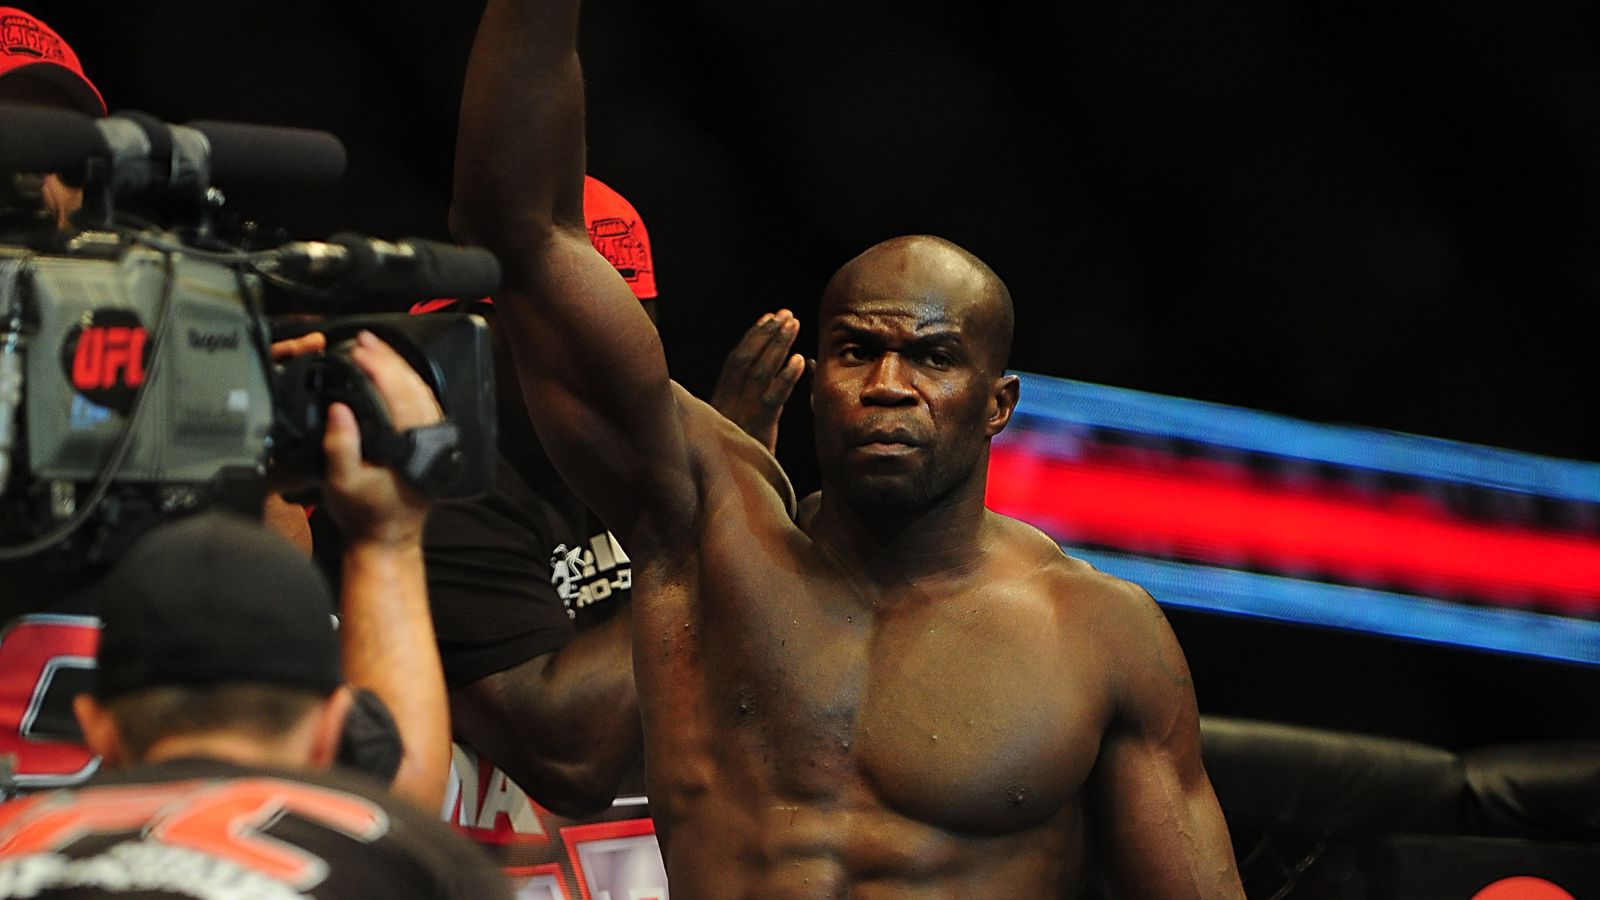 Fightweets: Kongo's rise and fall